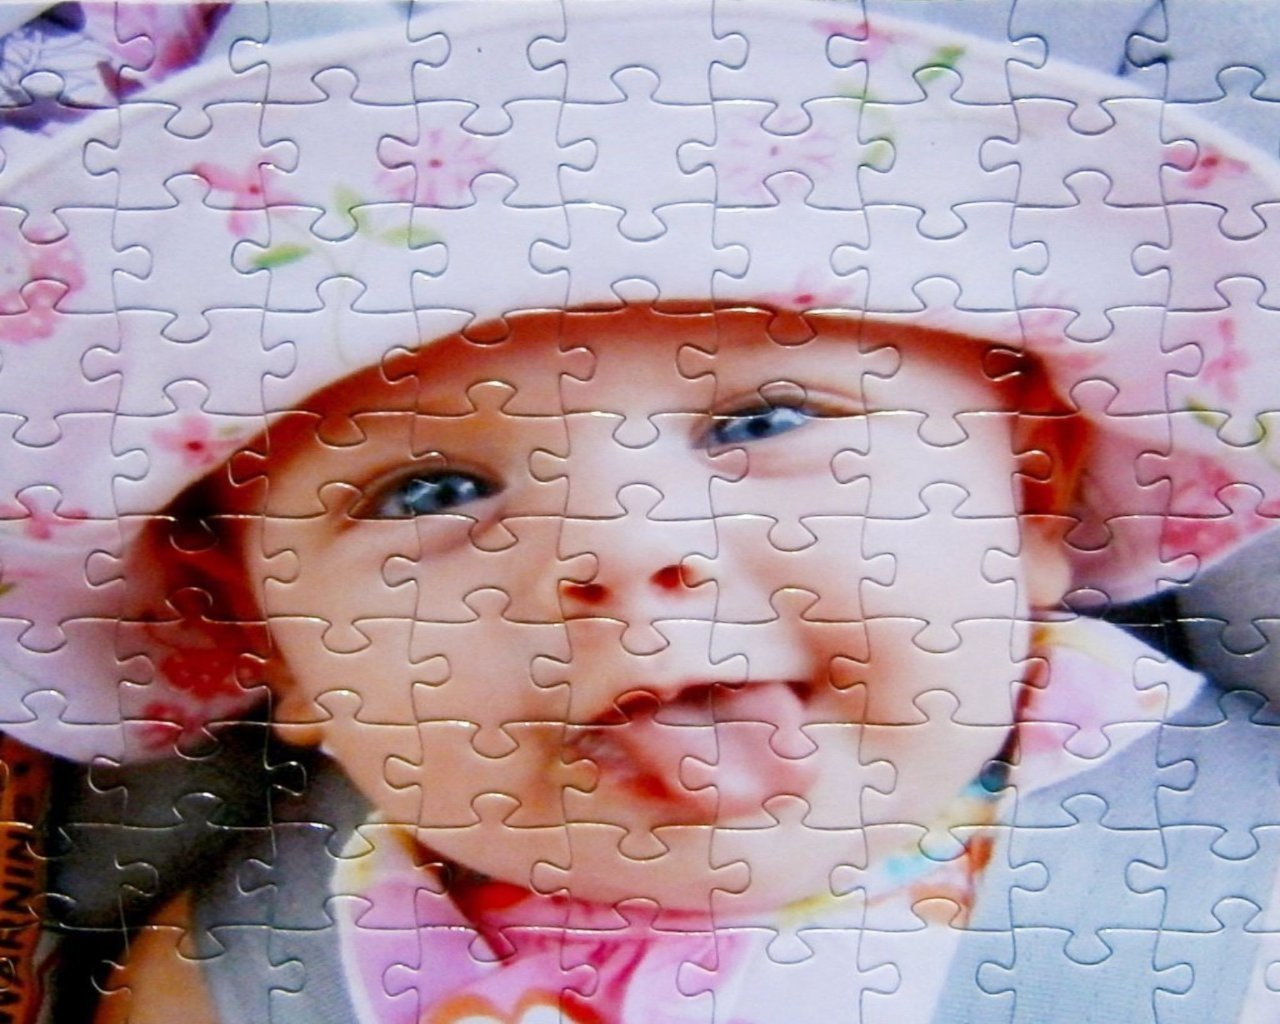 Custom Puzzle - Cheap Custom Puzzle Gift With 60 Pieces!  8 X 10 Inch Puzzle